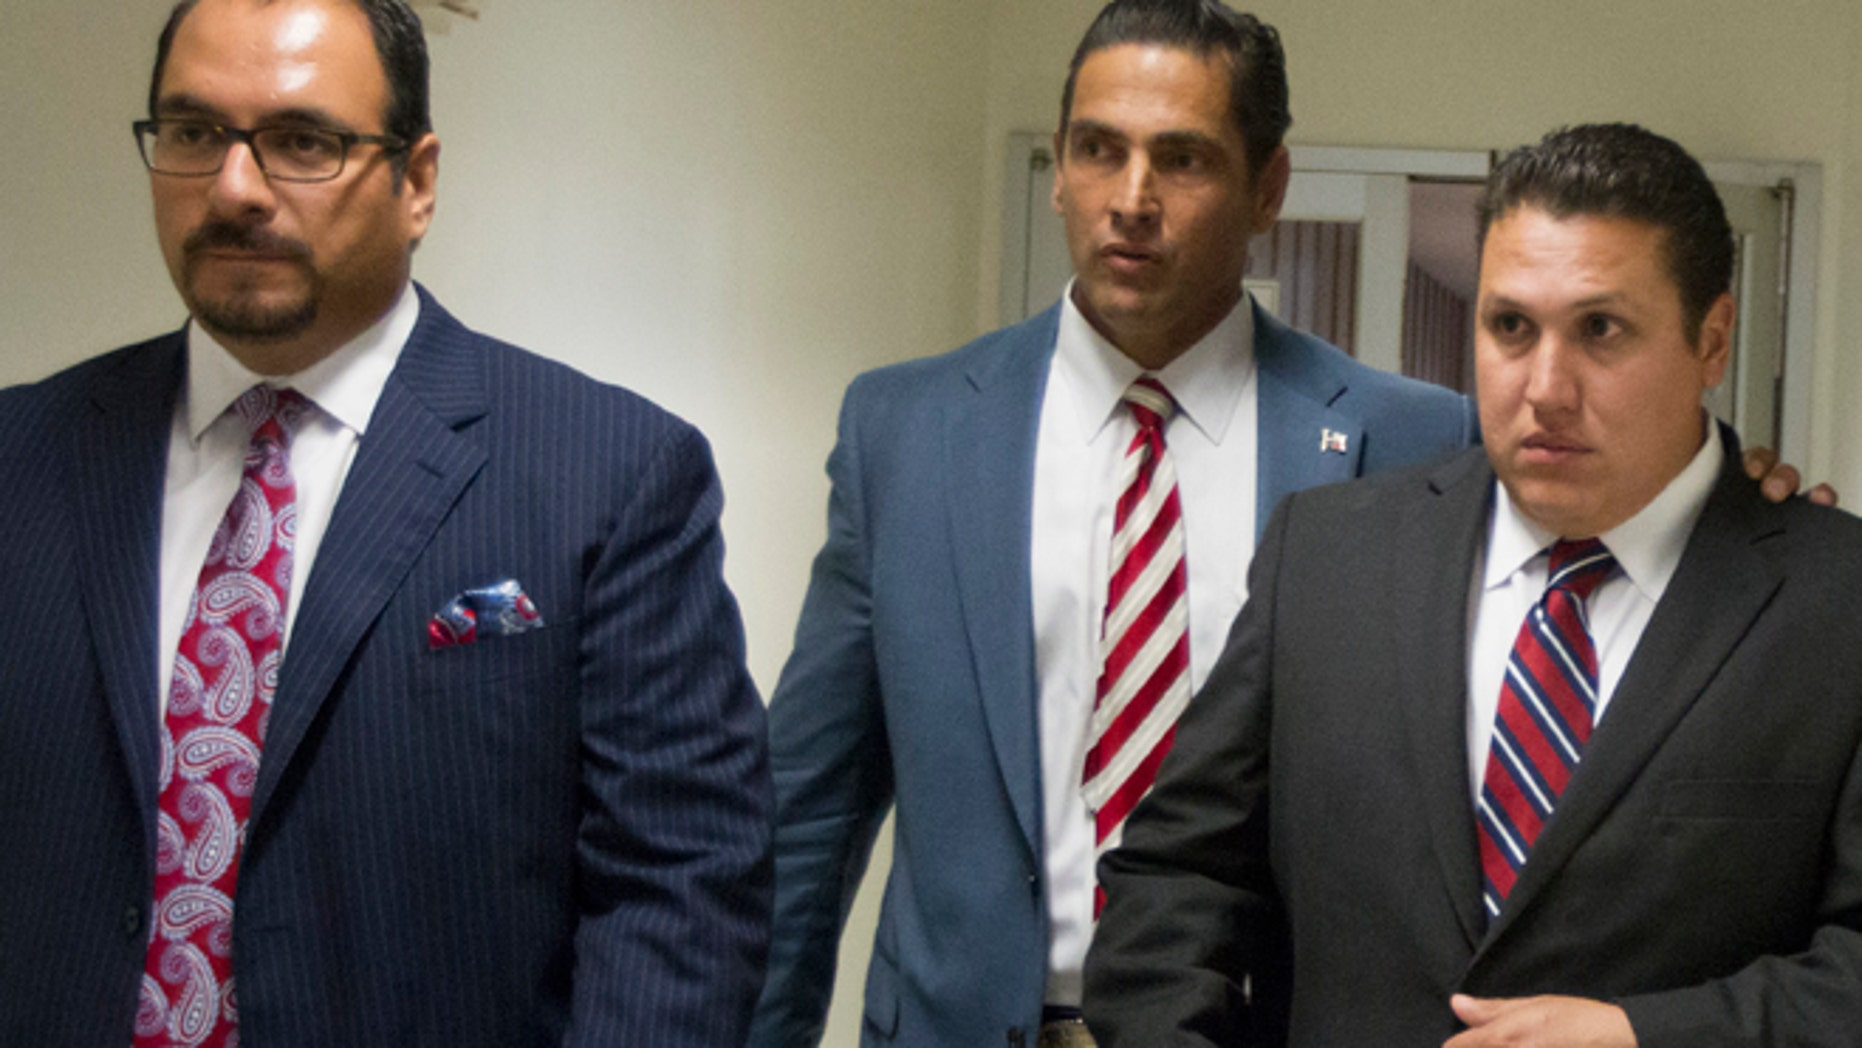 Aug. 27: David Barajas, right, walks through the hallway with his attorneys Sam Cammack, center, and Phil Morin as the jury deliberates at the Brazoria County Courthouse.